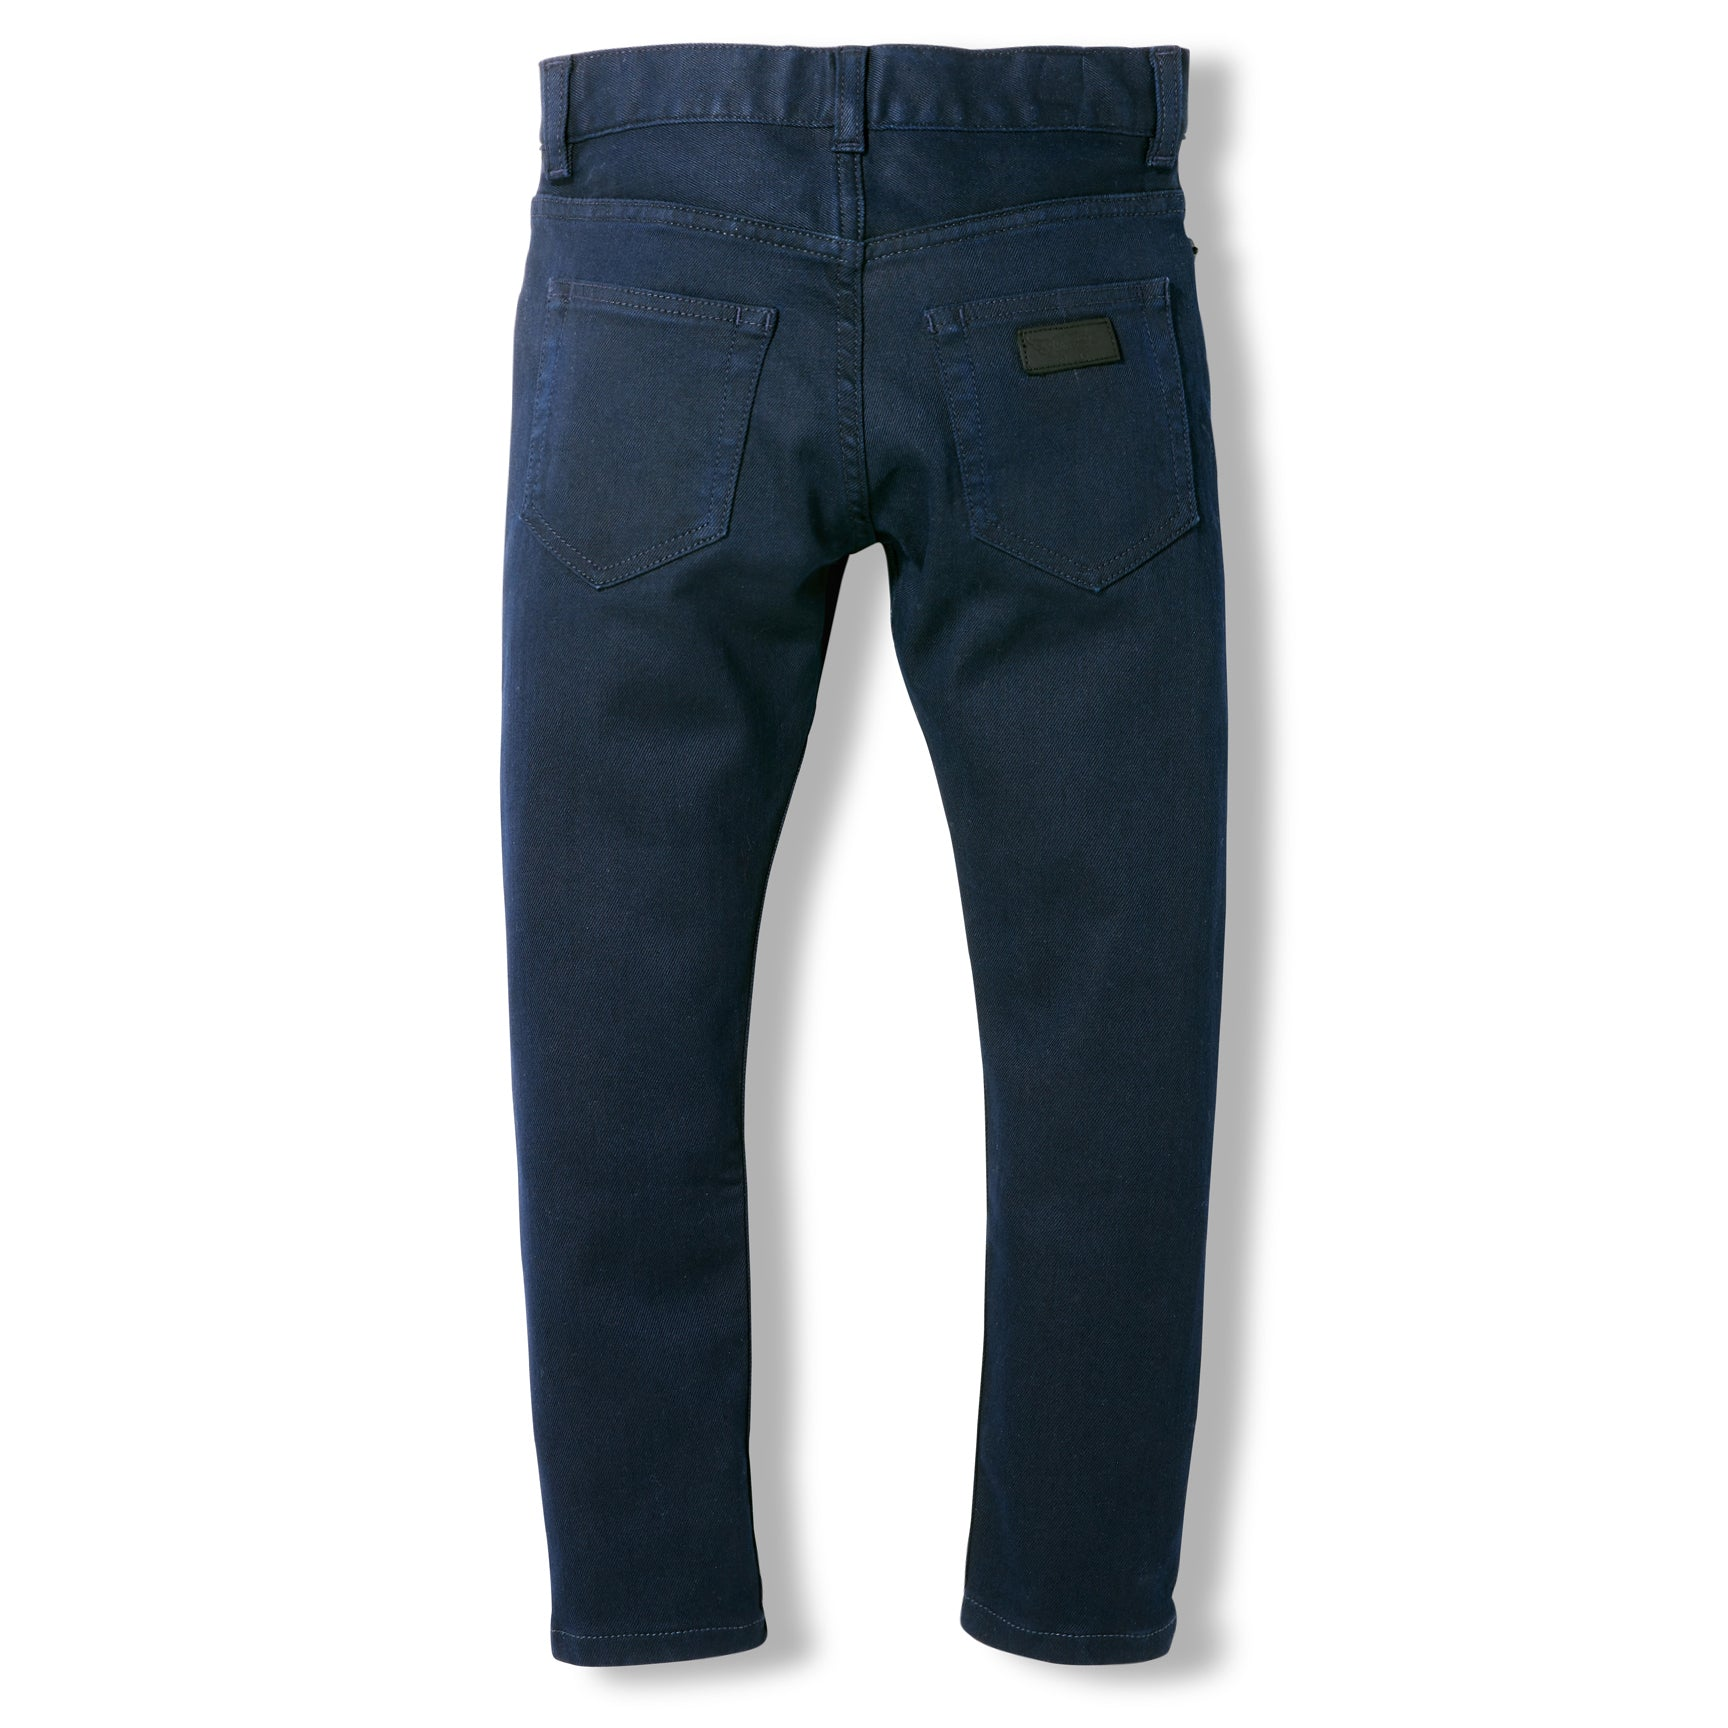 EWAN Deep Blue Denim - 5-Pocket Comfort Fit Jean